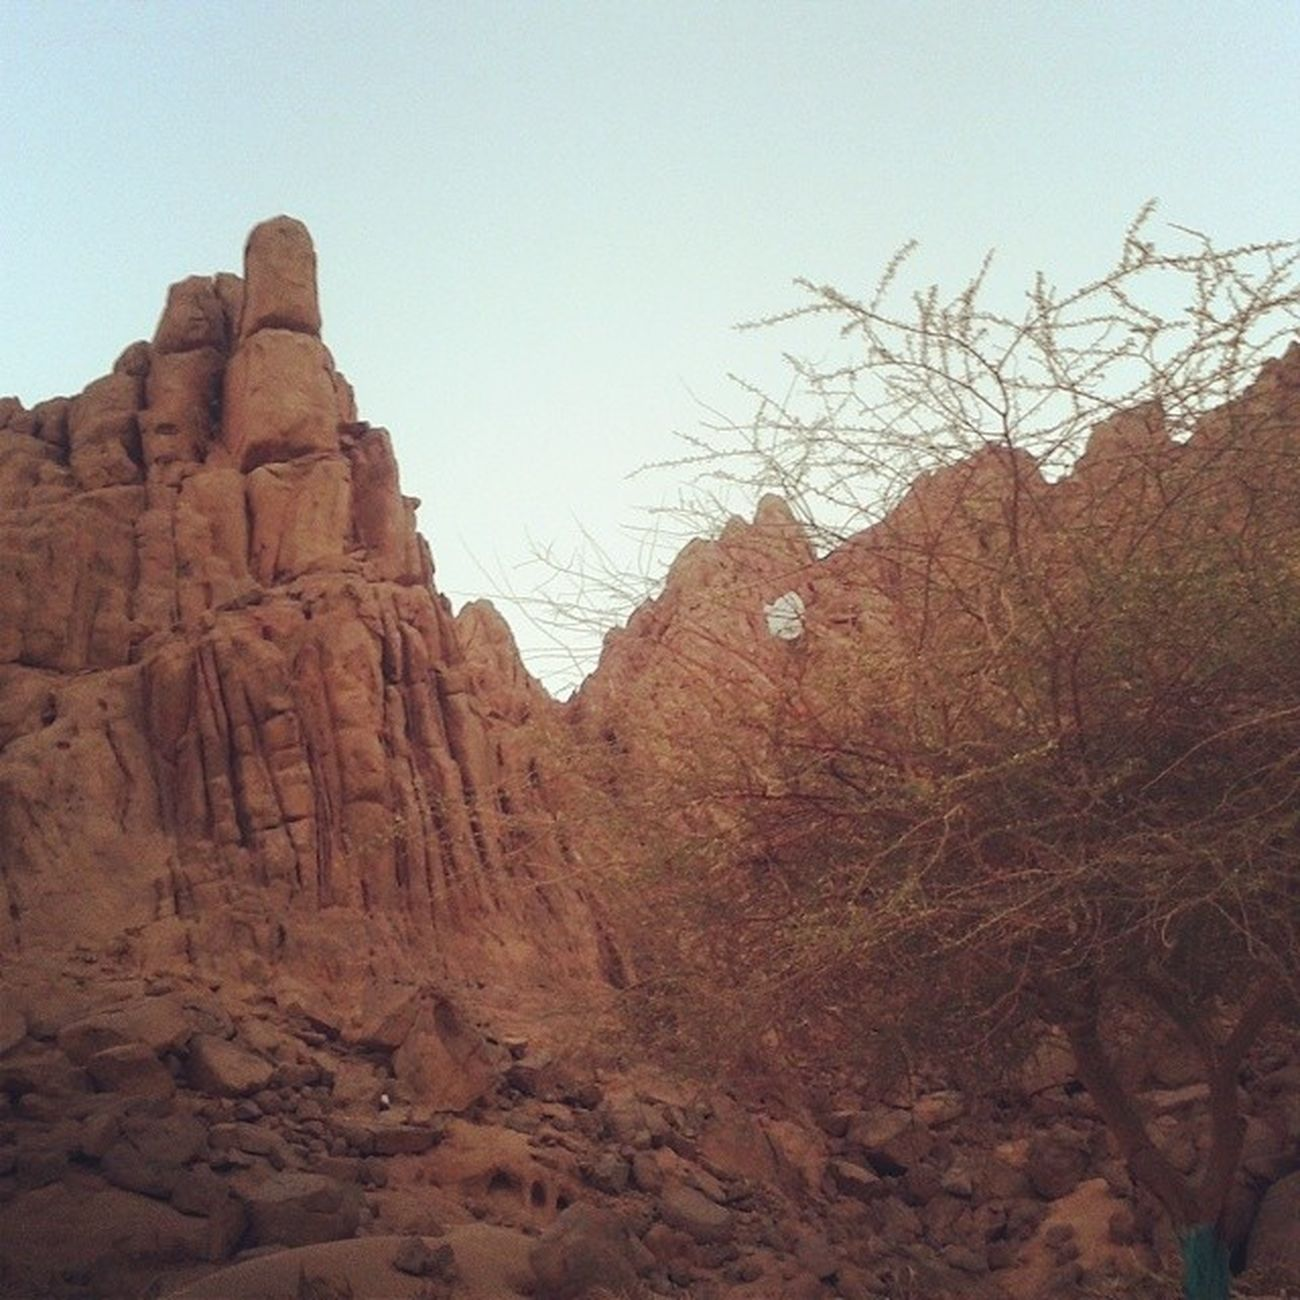 Mountain Natural Safari Sinai 'sDesert sunset takenByMe